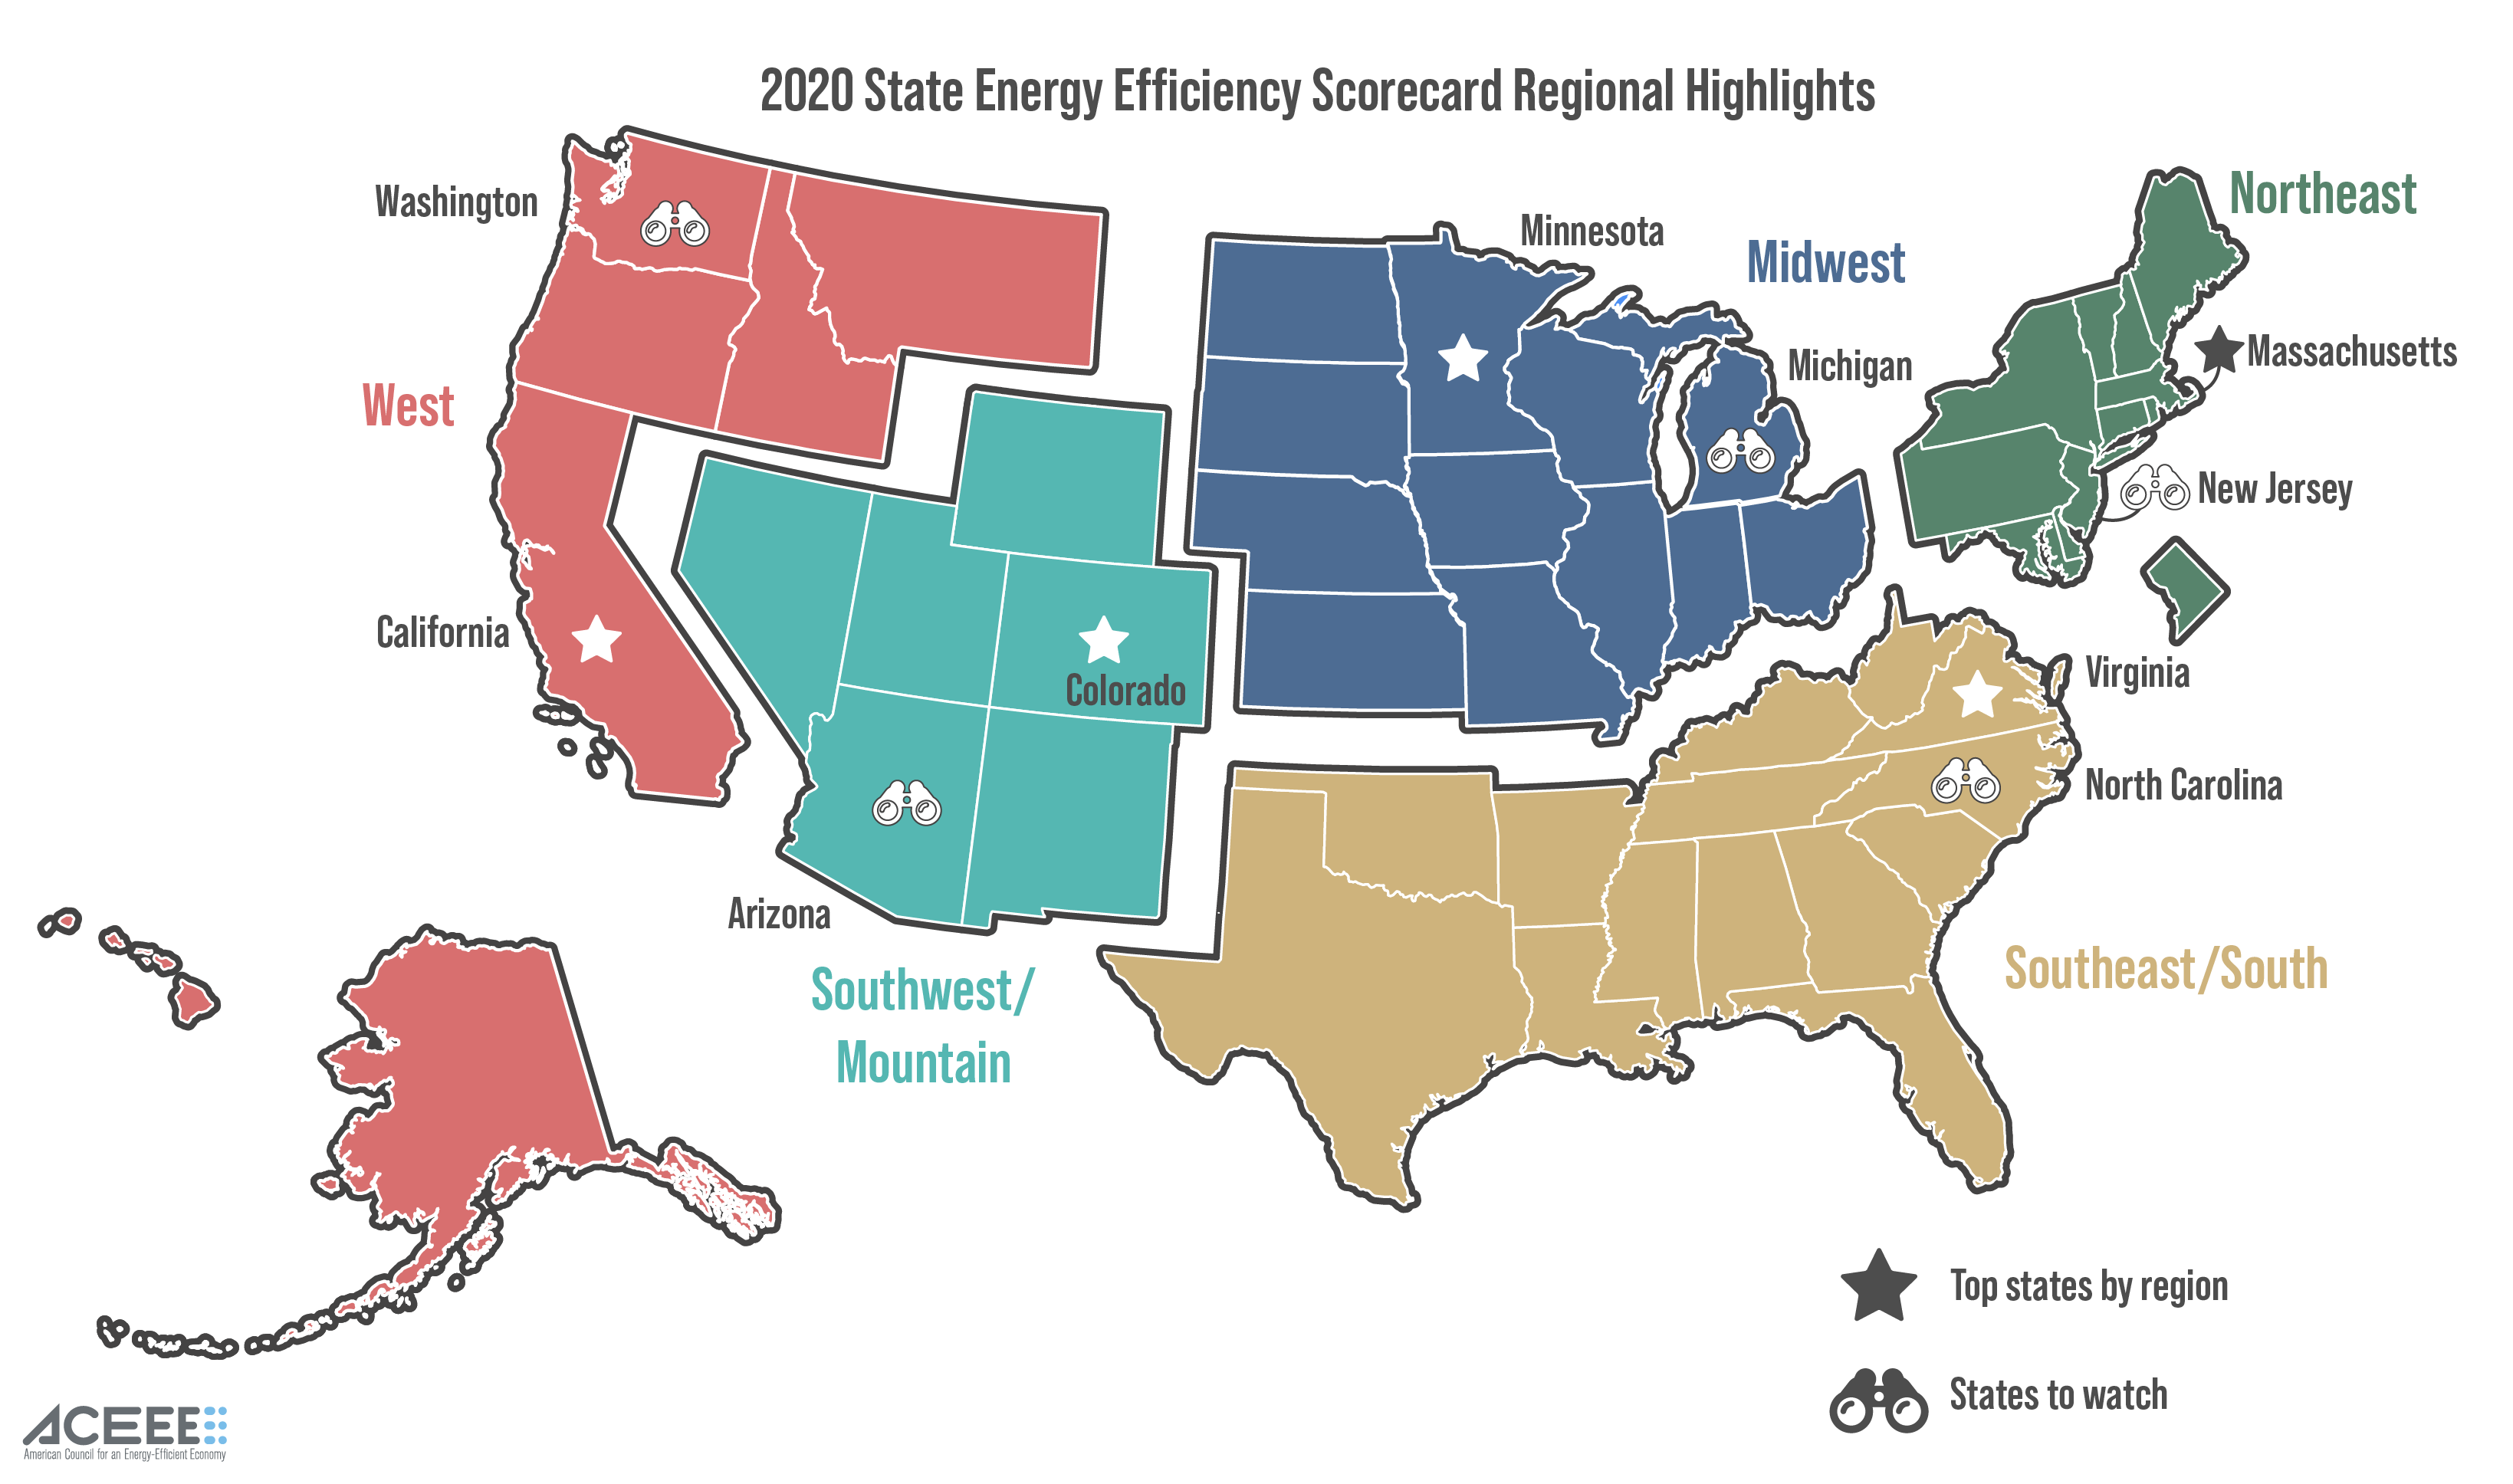 ACEEE 2020 Energy Efficiency Scorecard regional rankings